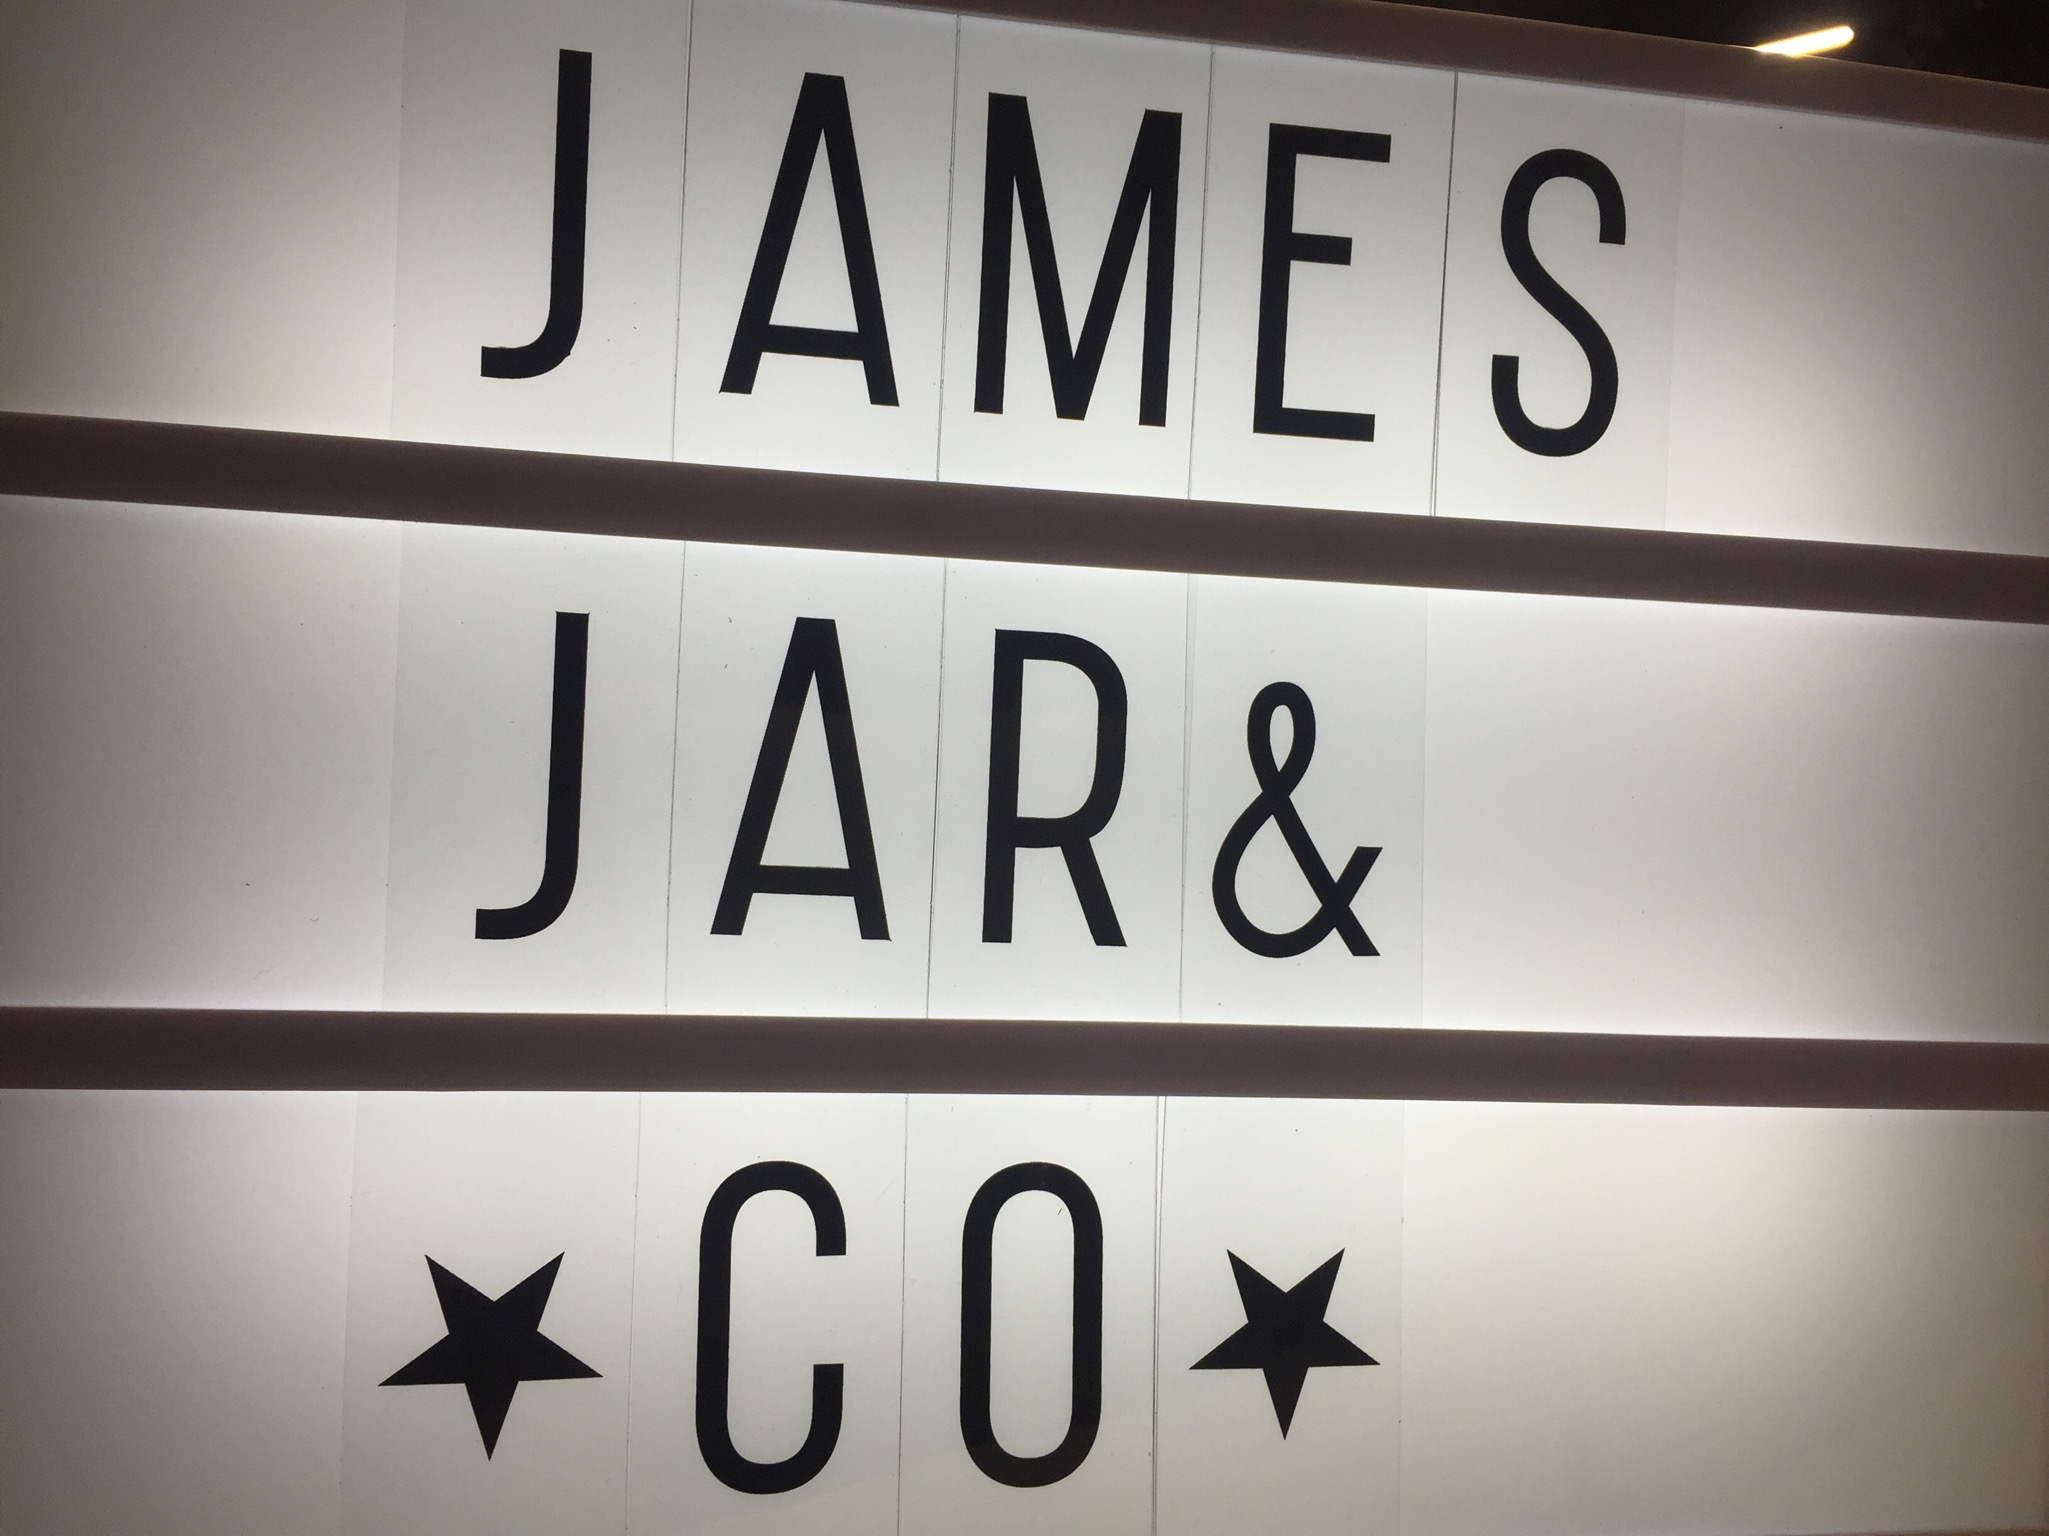 James Jar & Co.